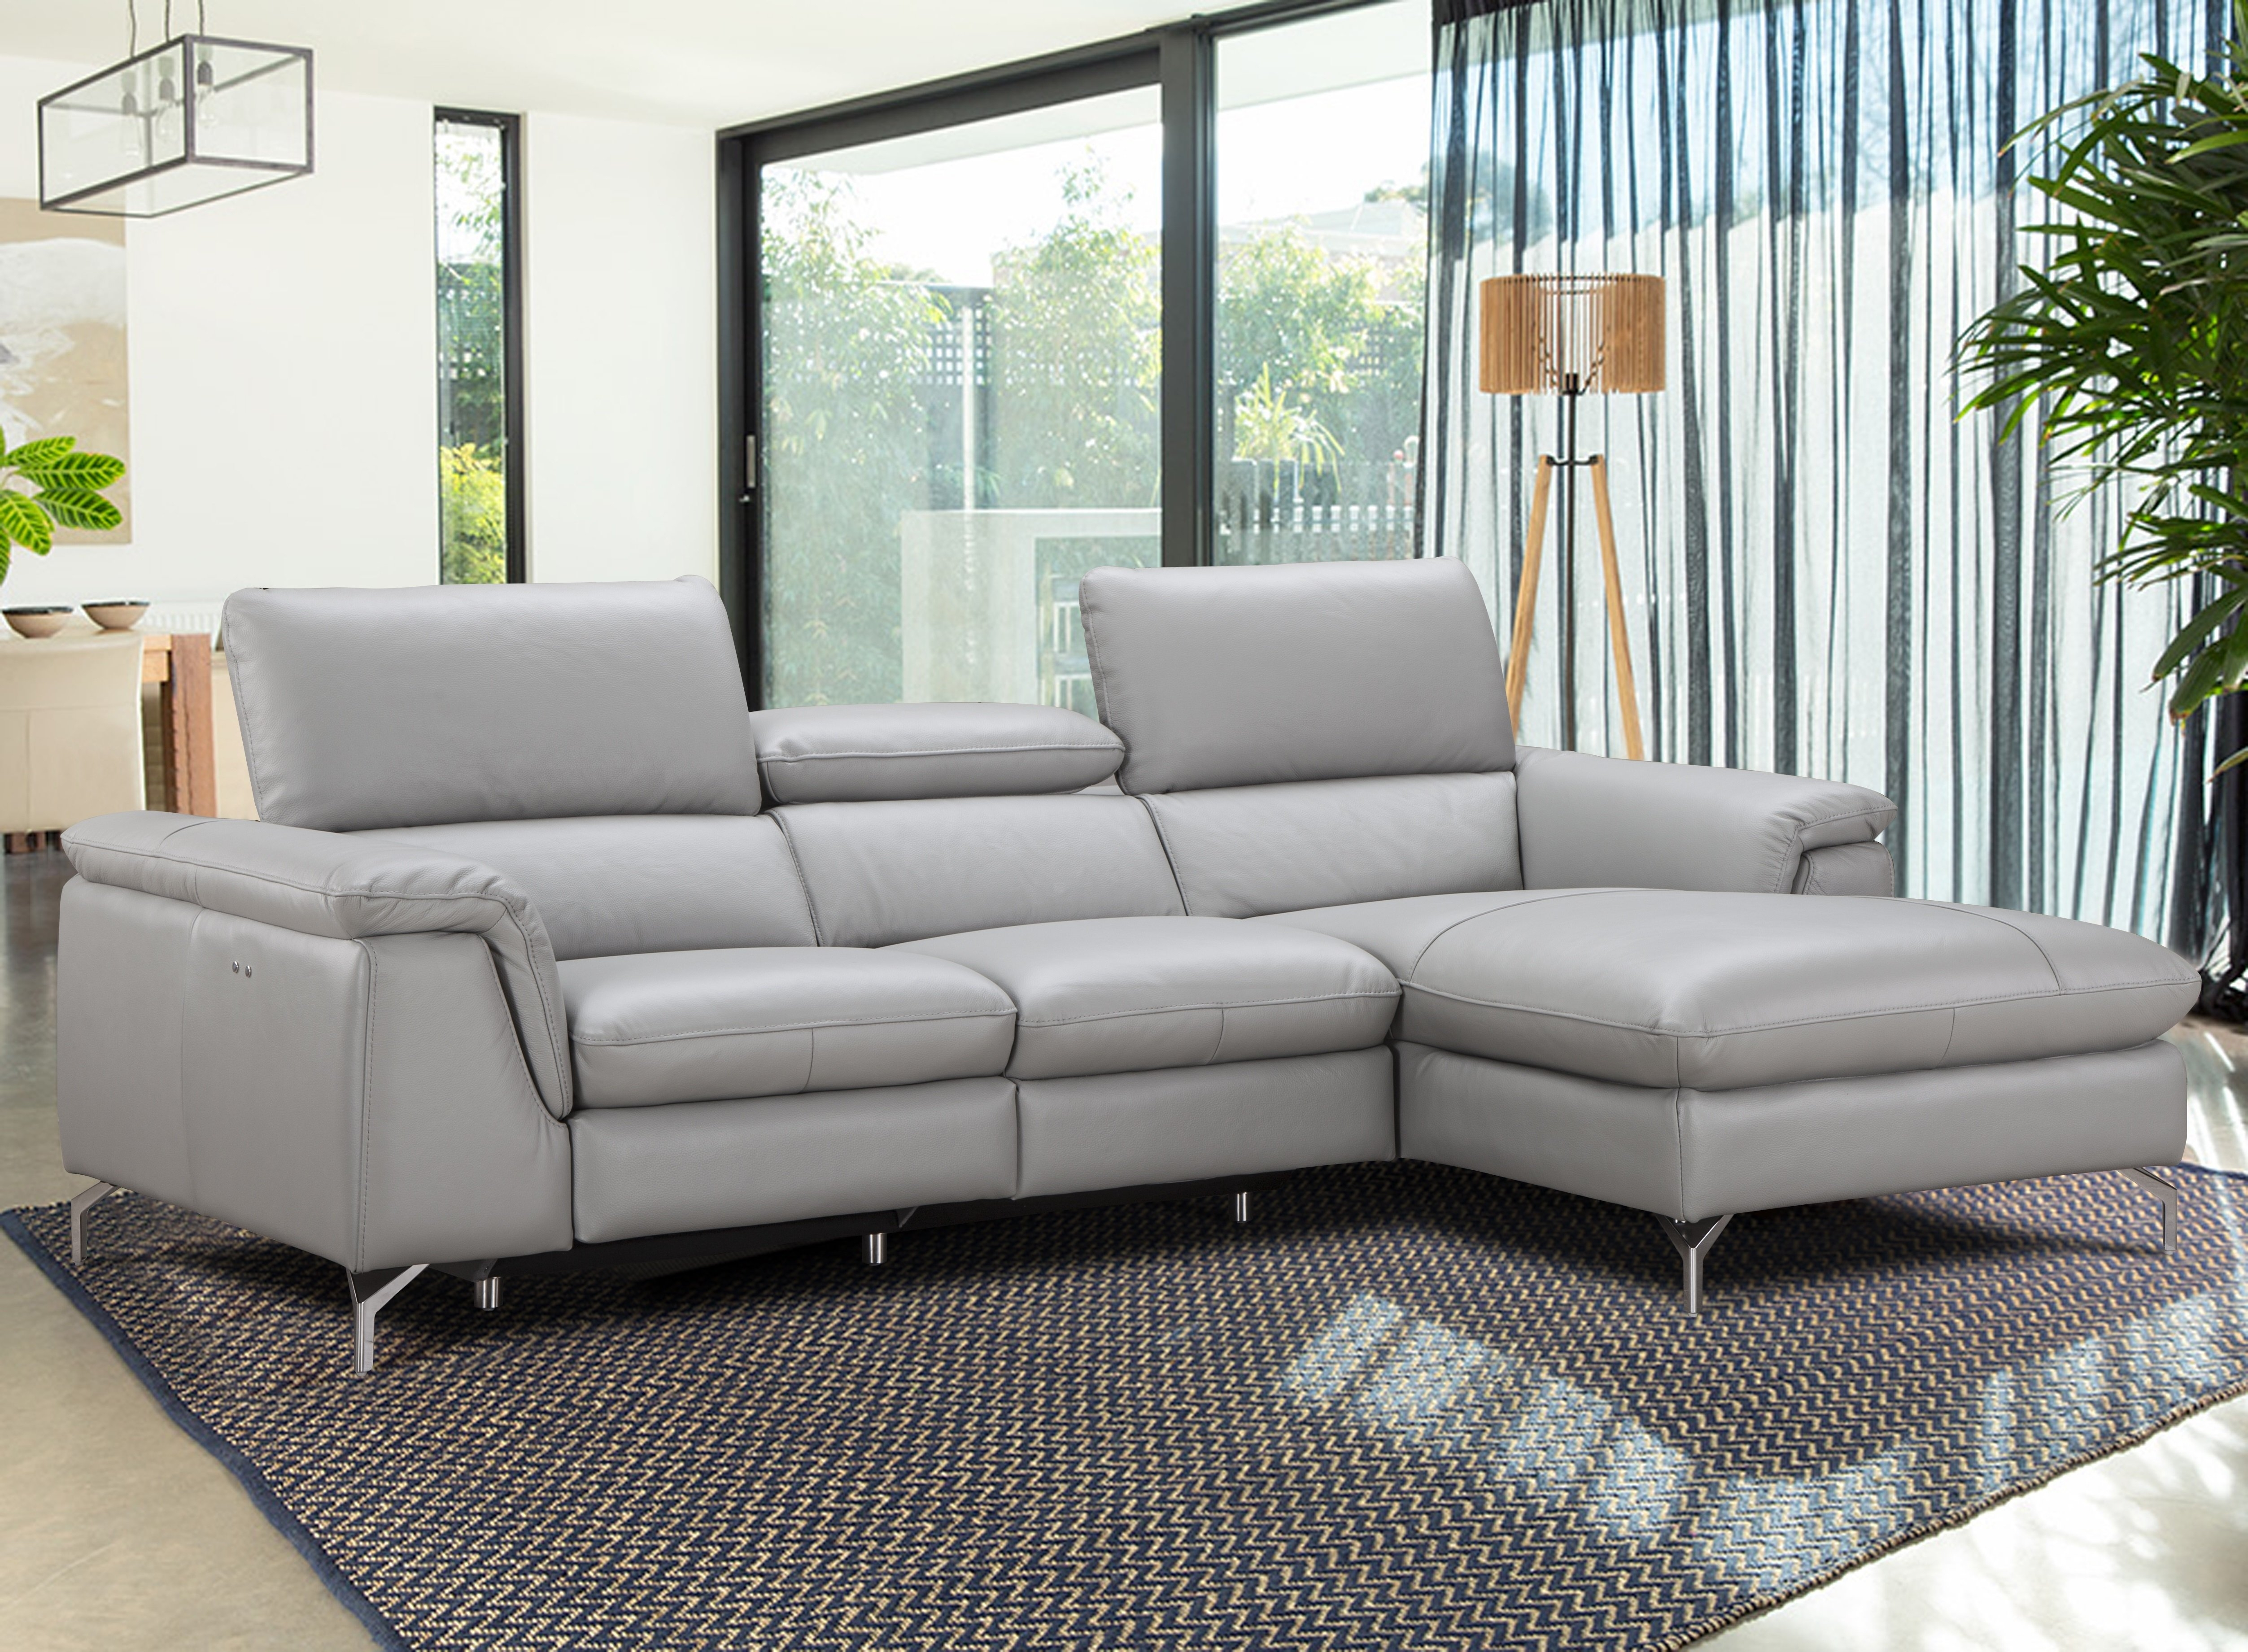 J&m Furniture Serena Leather Reclining Sectional & Reviews | Wayfair For Adeline 3 Piece Sectionals (Photo 13 of 25)